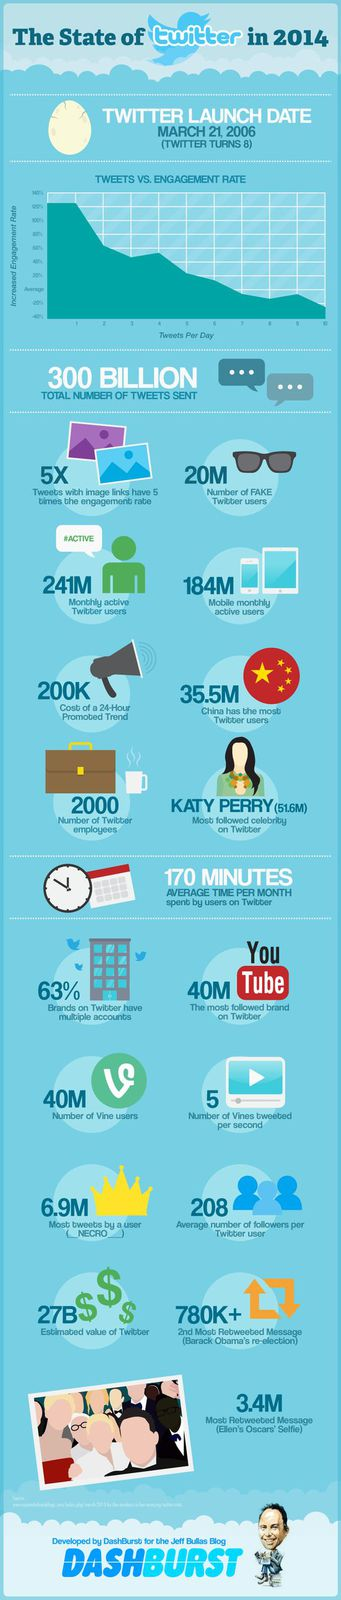 15 Twitter Facts and